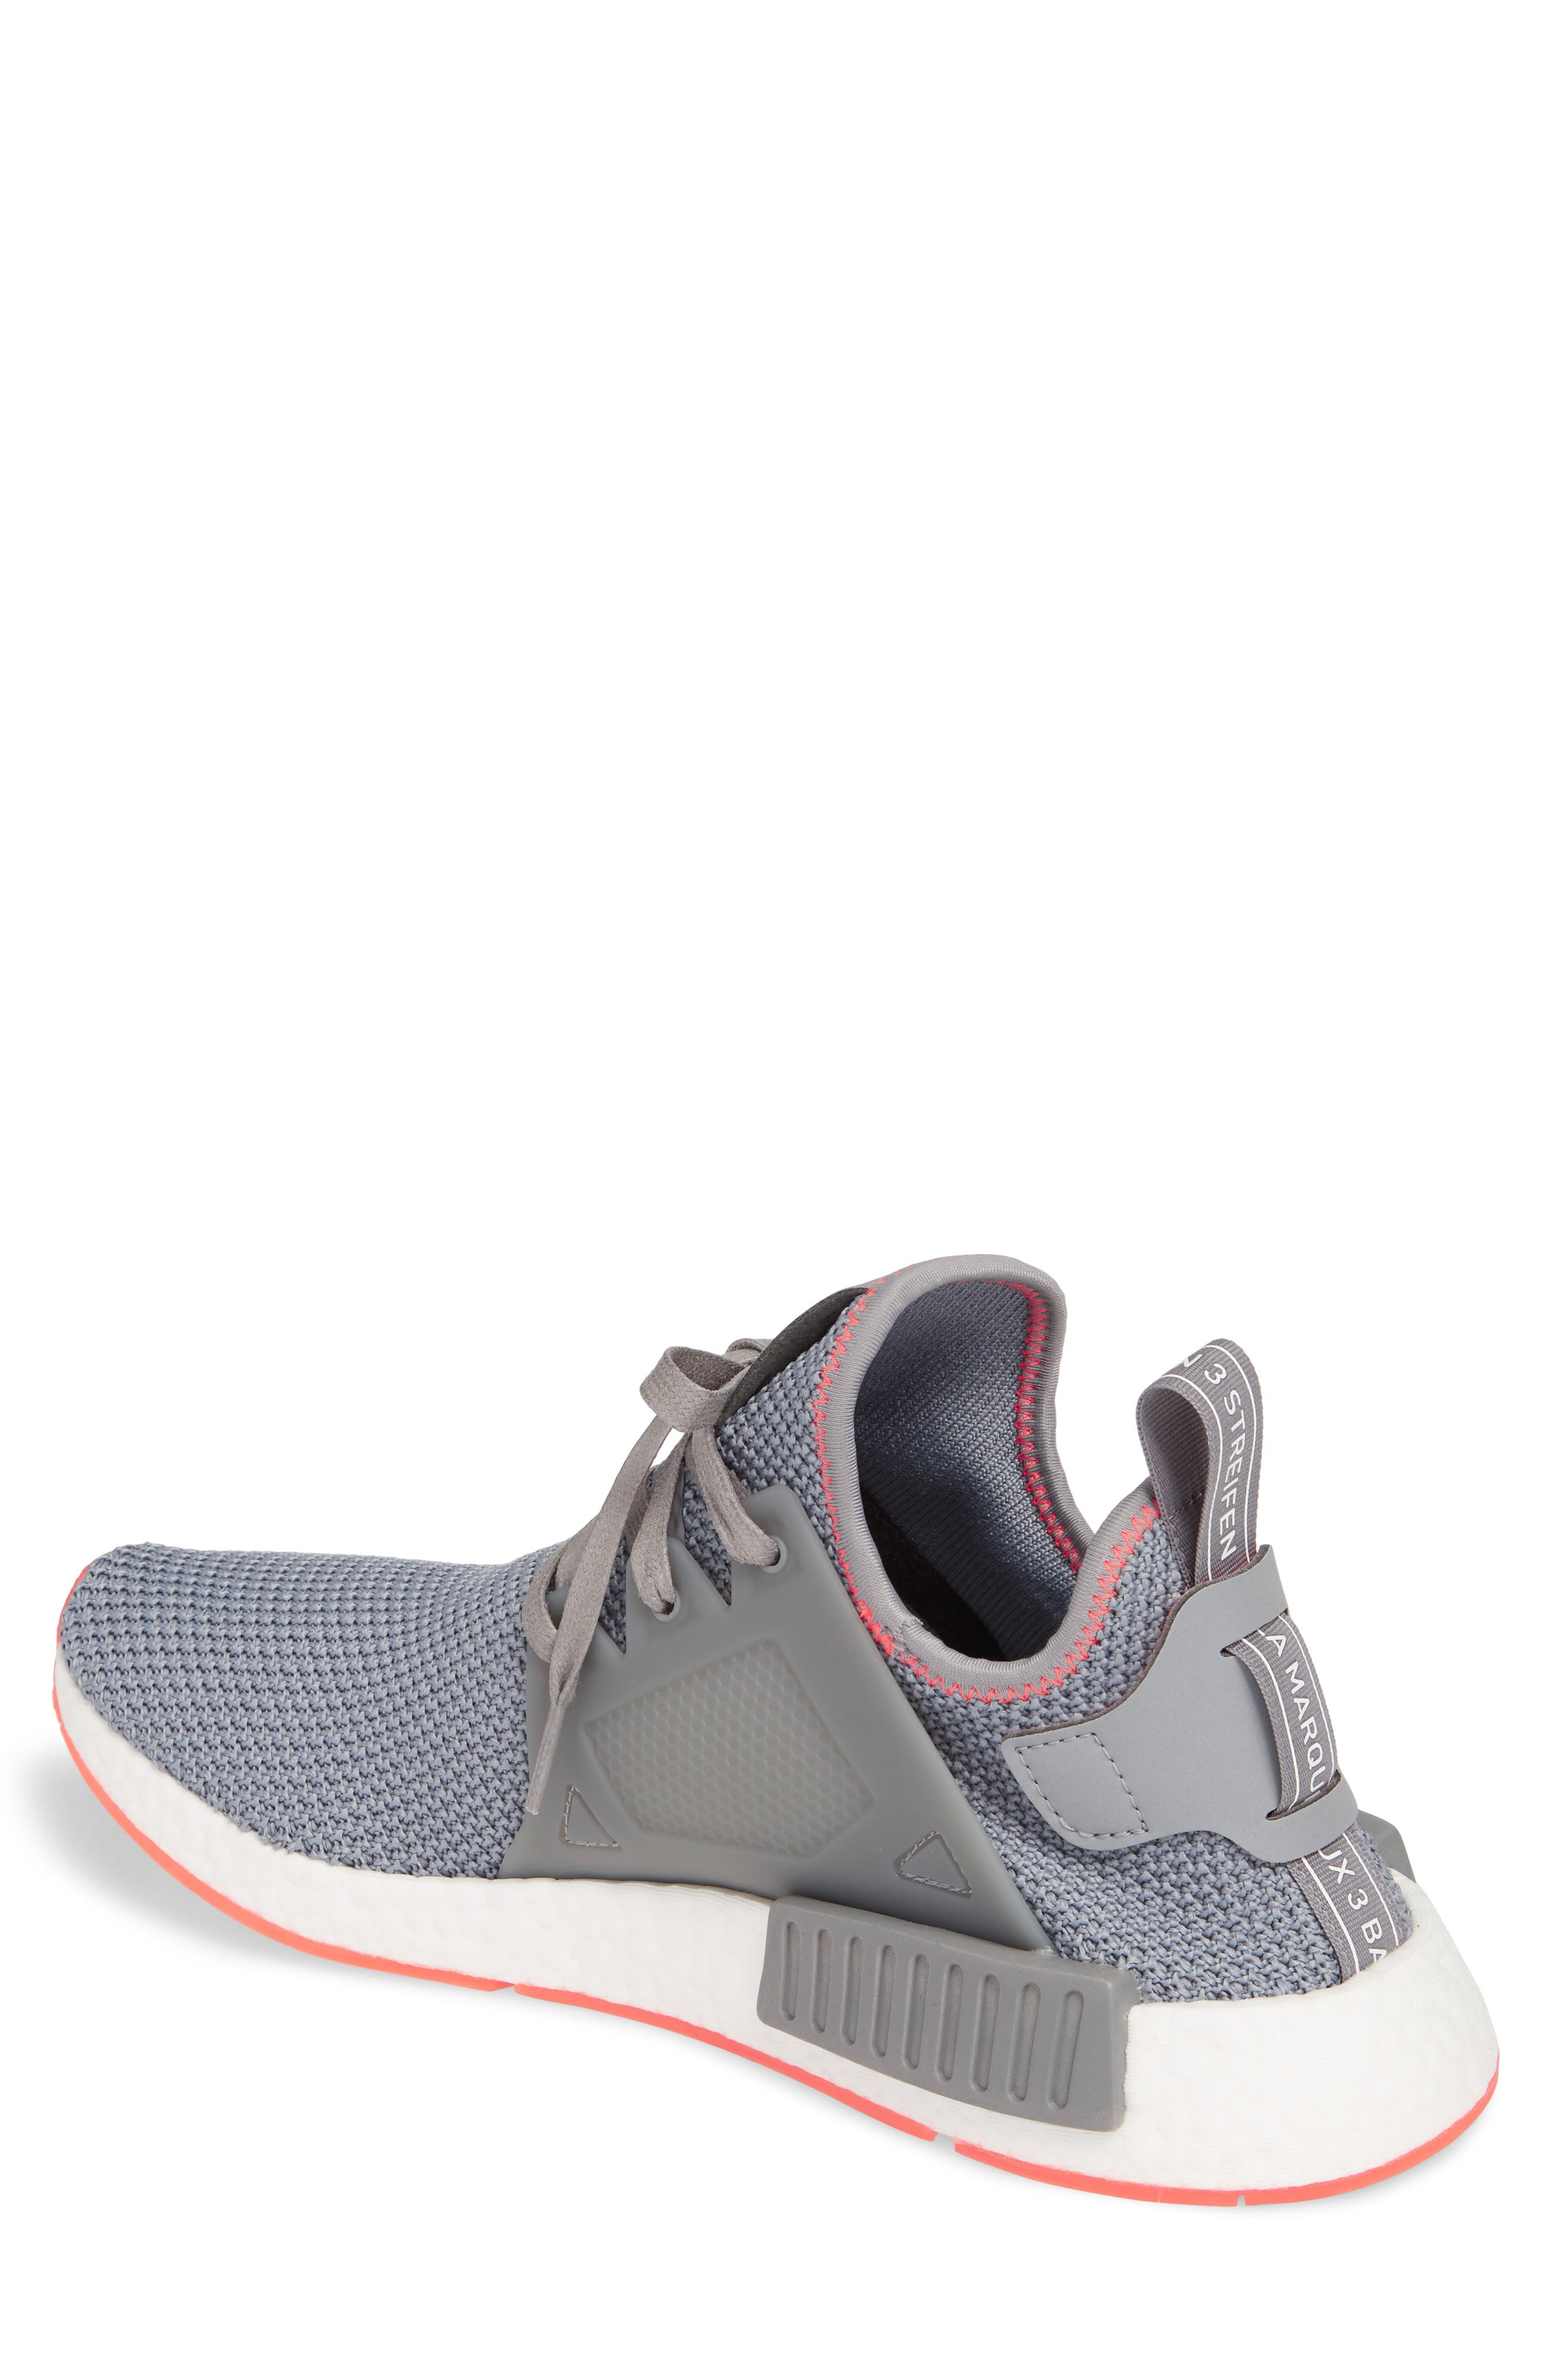 NMD_XR1 Sneaker,                             Alternate thumbnail 2, color,                             Grey Heather/ Red